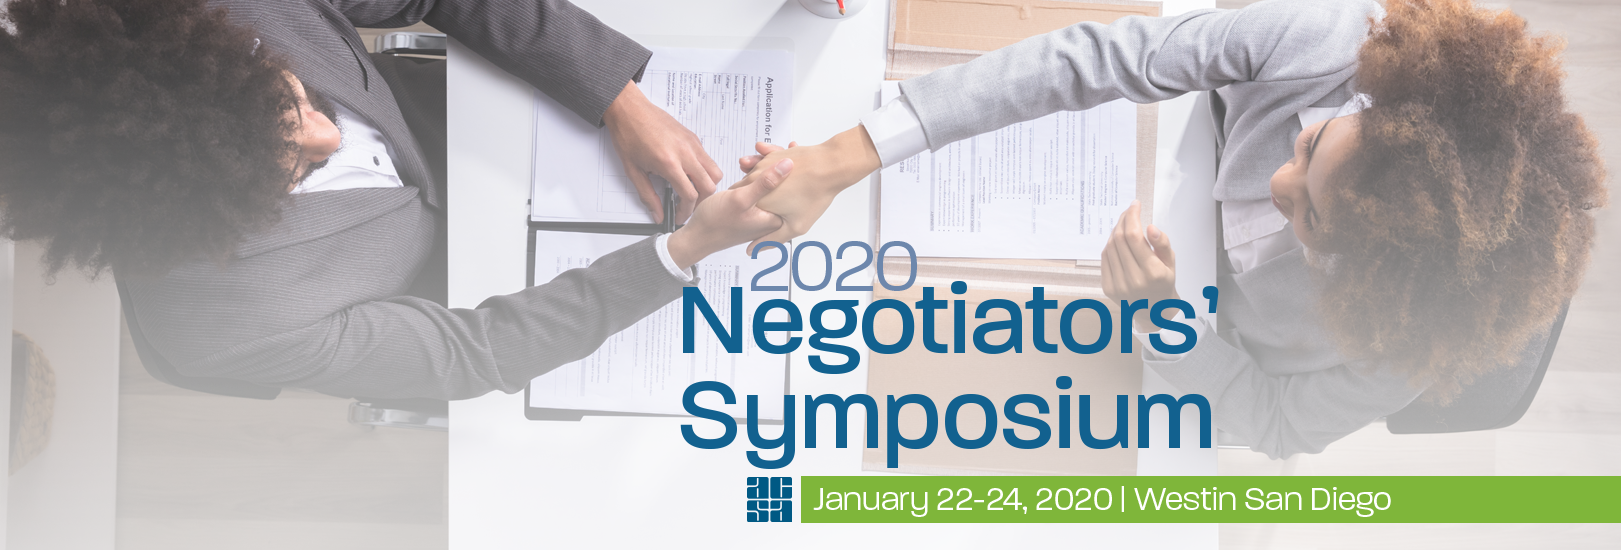 2020 Negotiators Symposium.